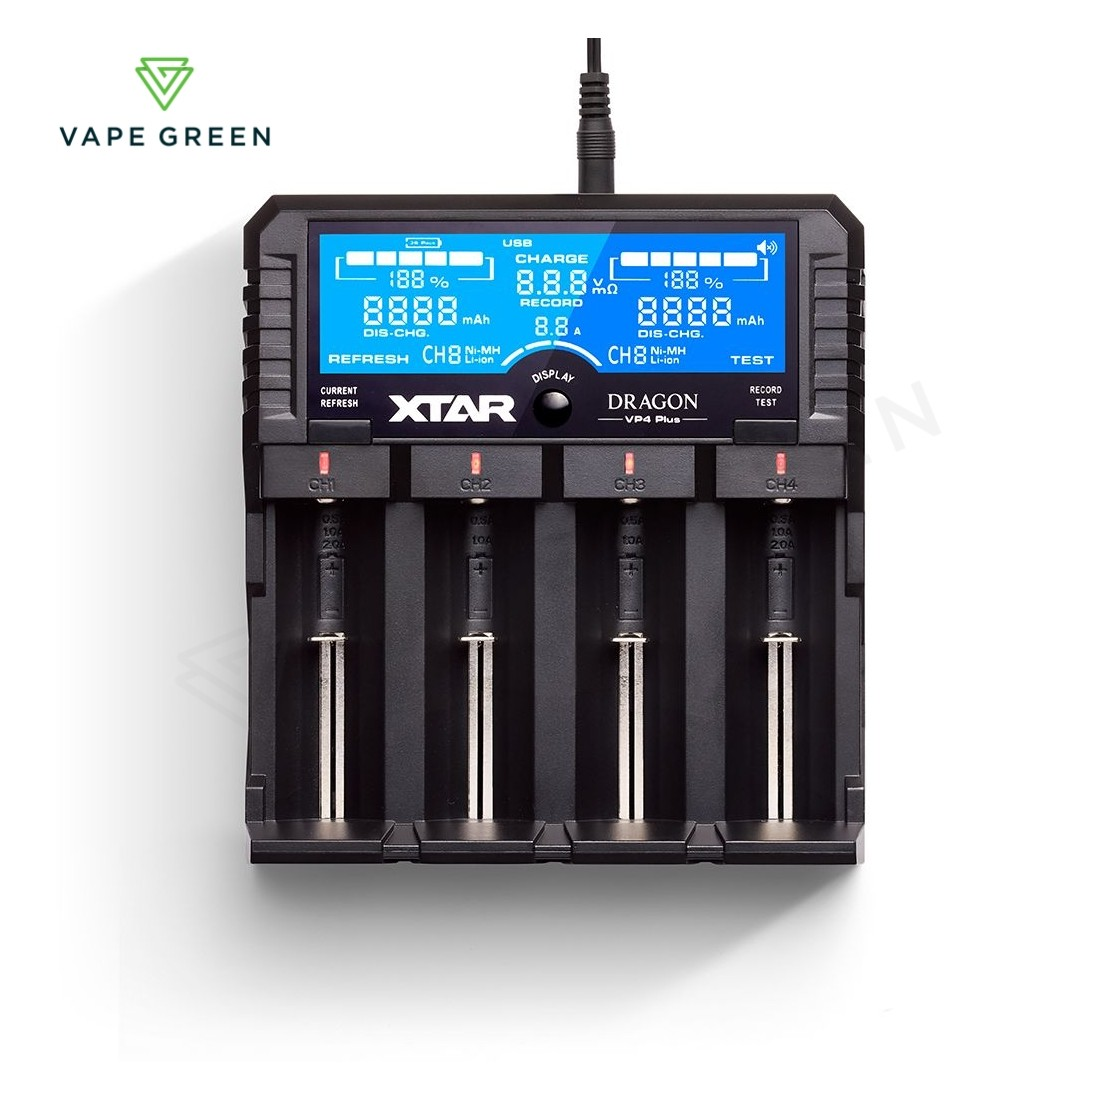 Xtar Dragon VP4 Plus Battery Charger (4-Bay)